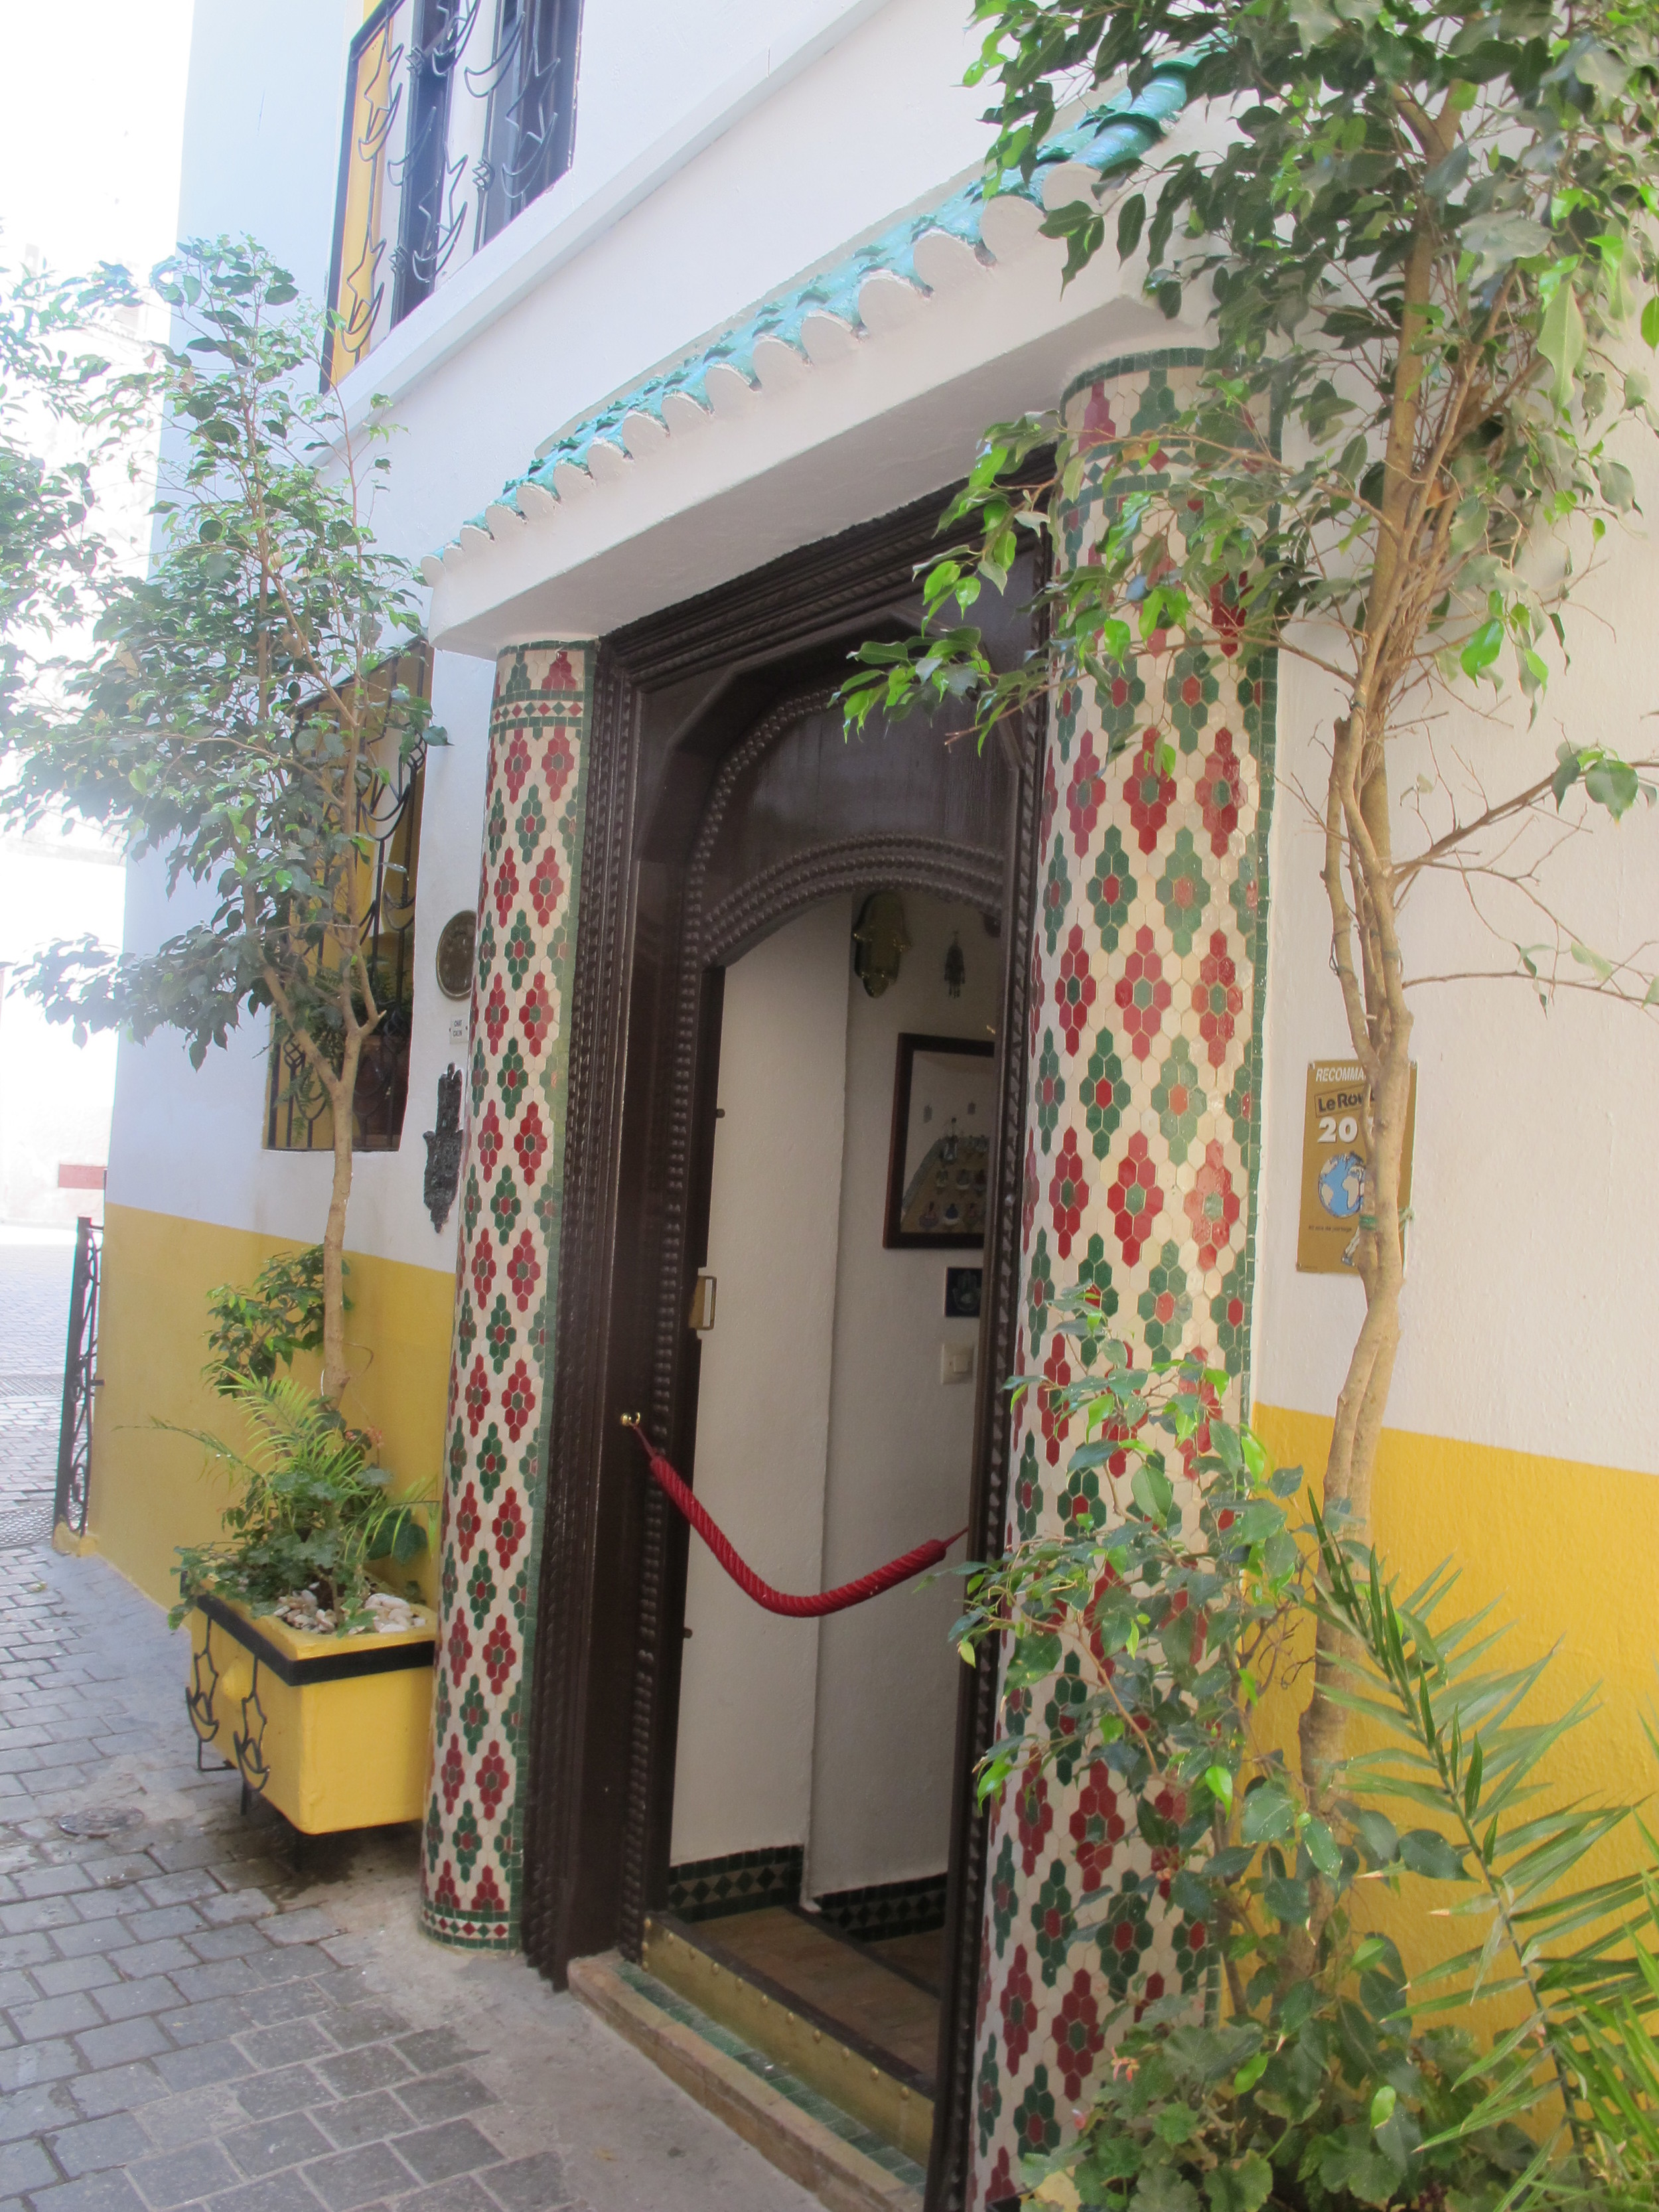 The entrance of another little gem in the Medina